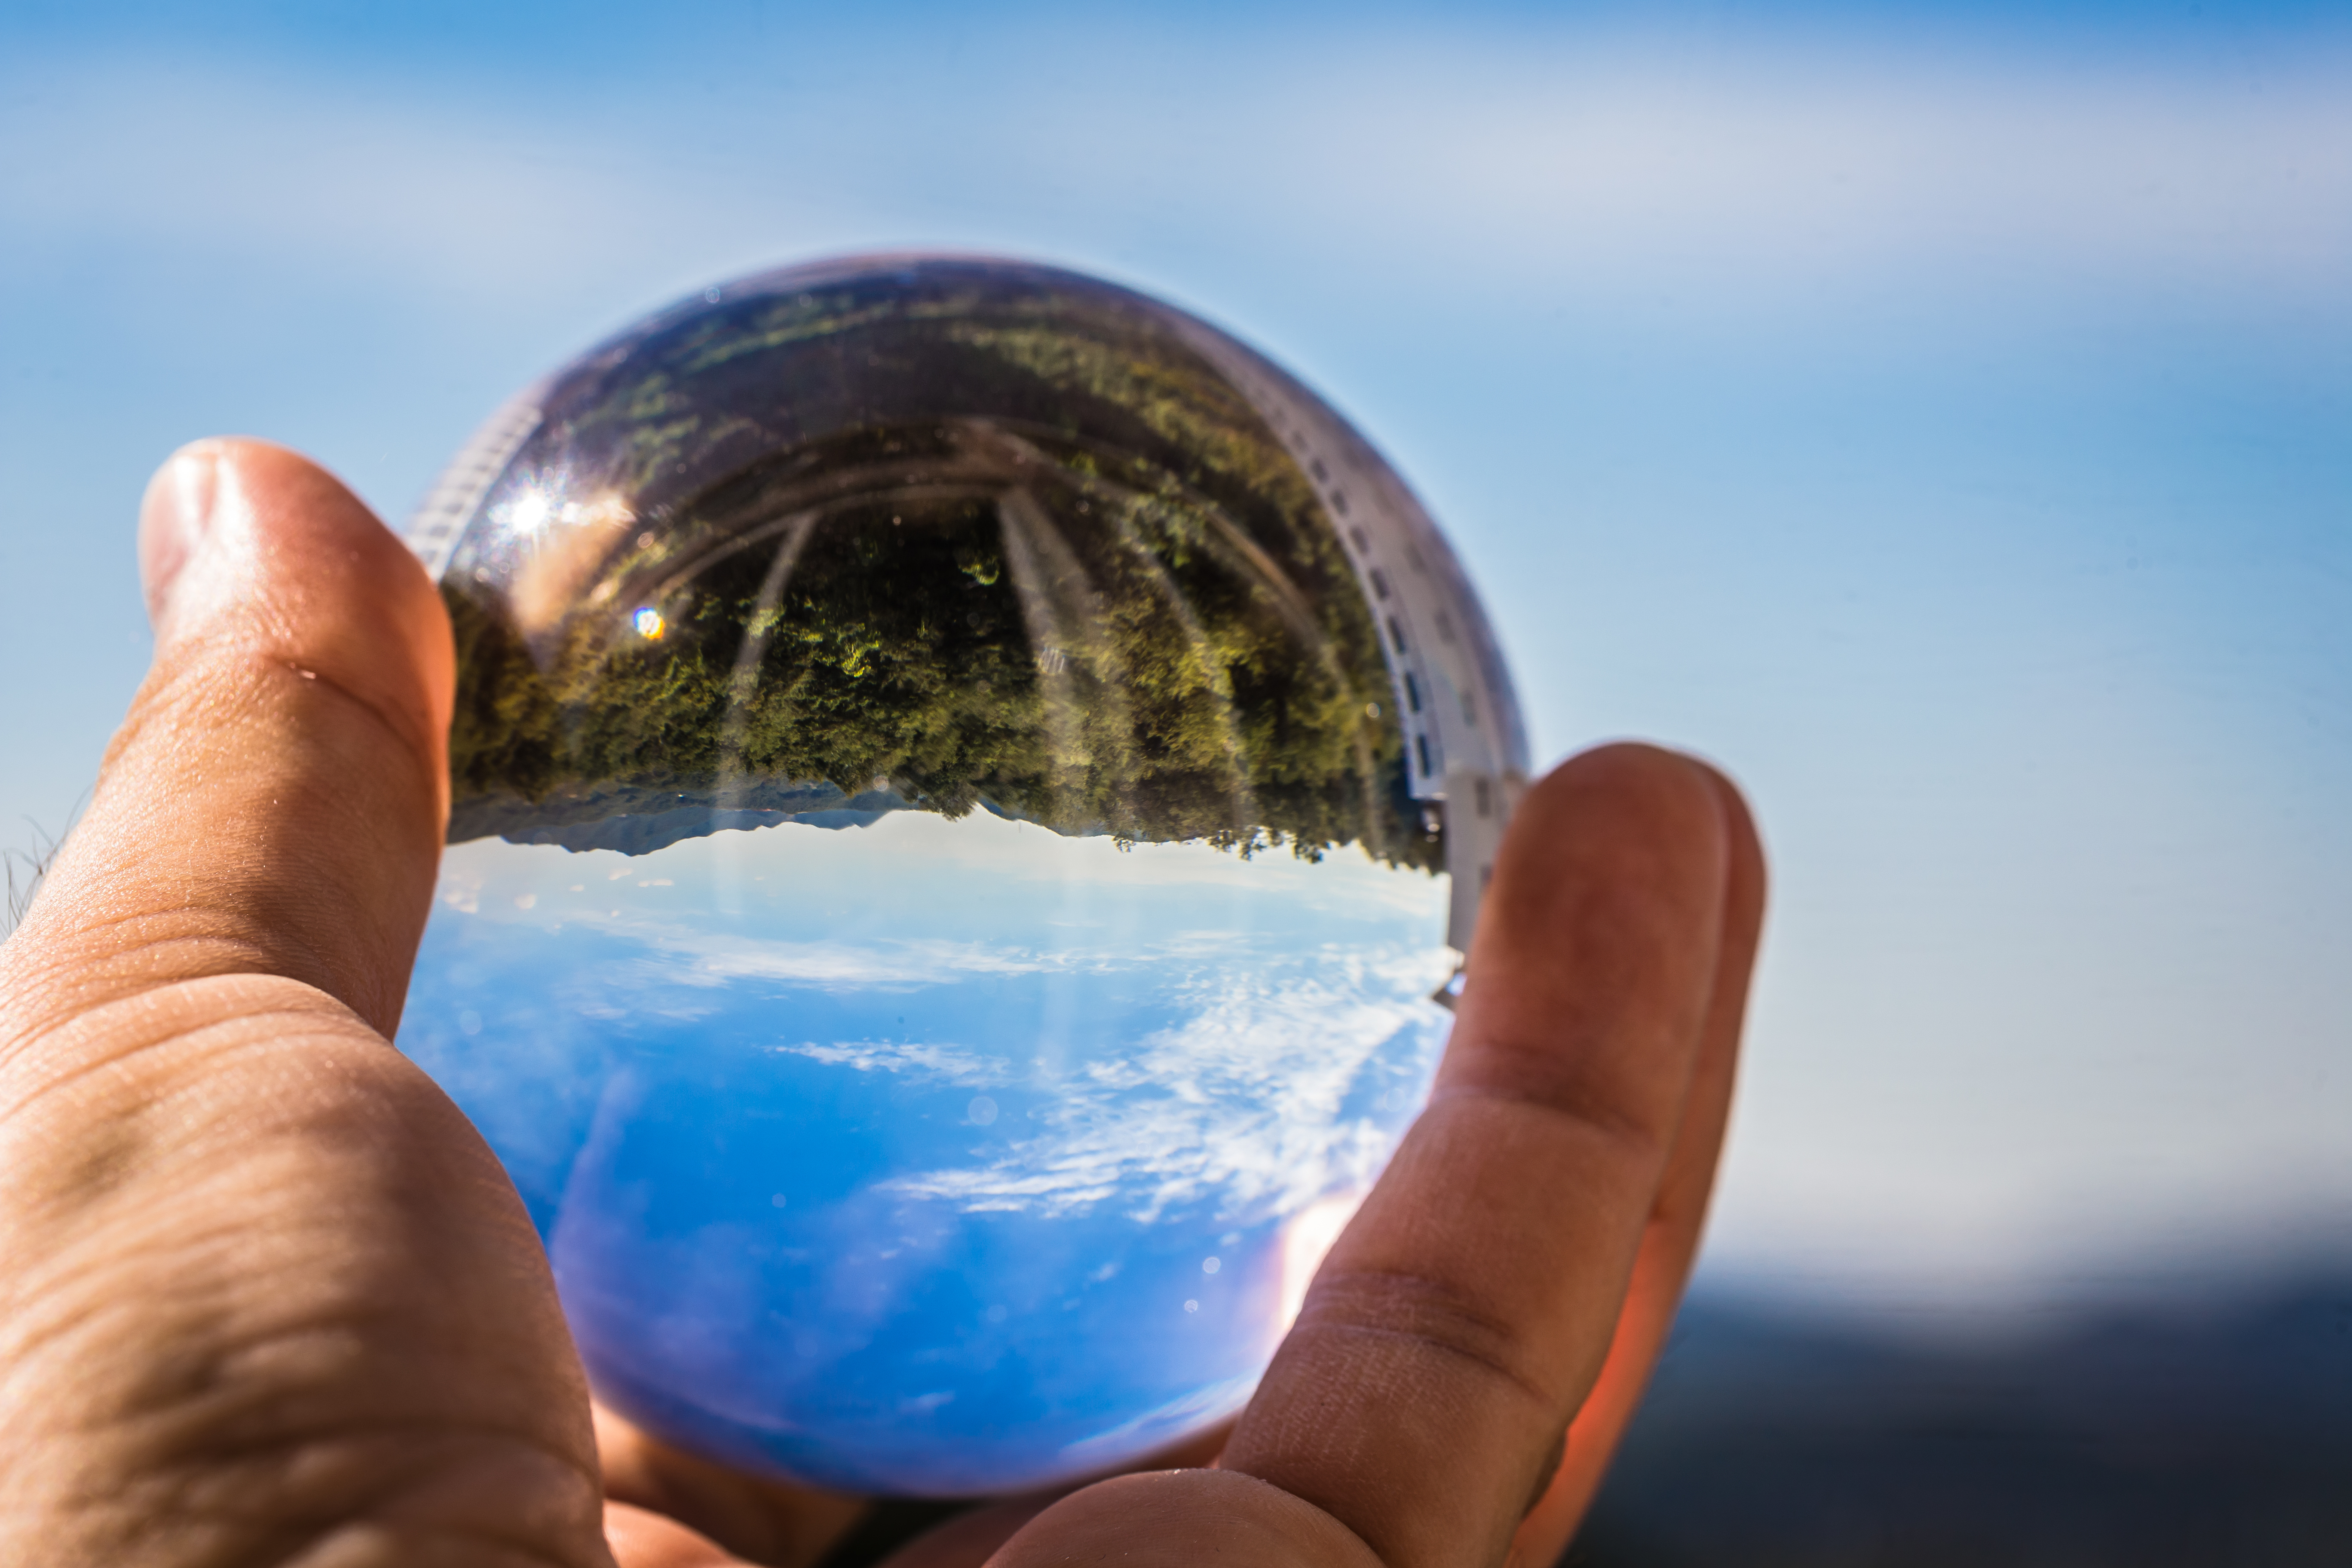 The sky reflected in the crystal ball